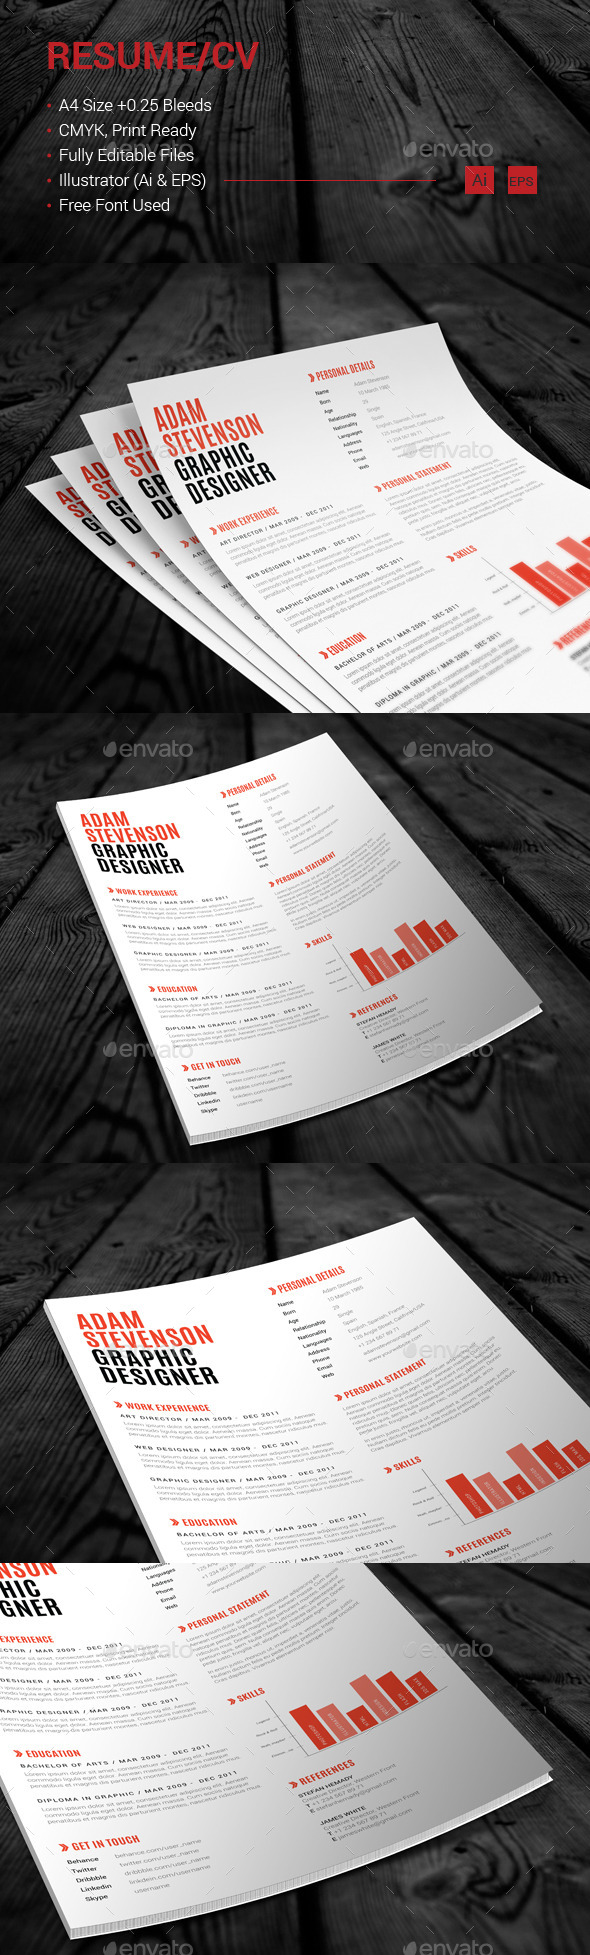 GraphicRiver Resume CV 11036062